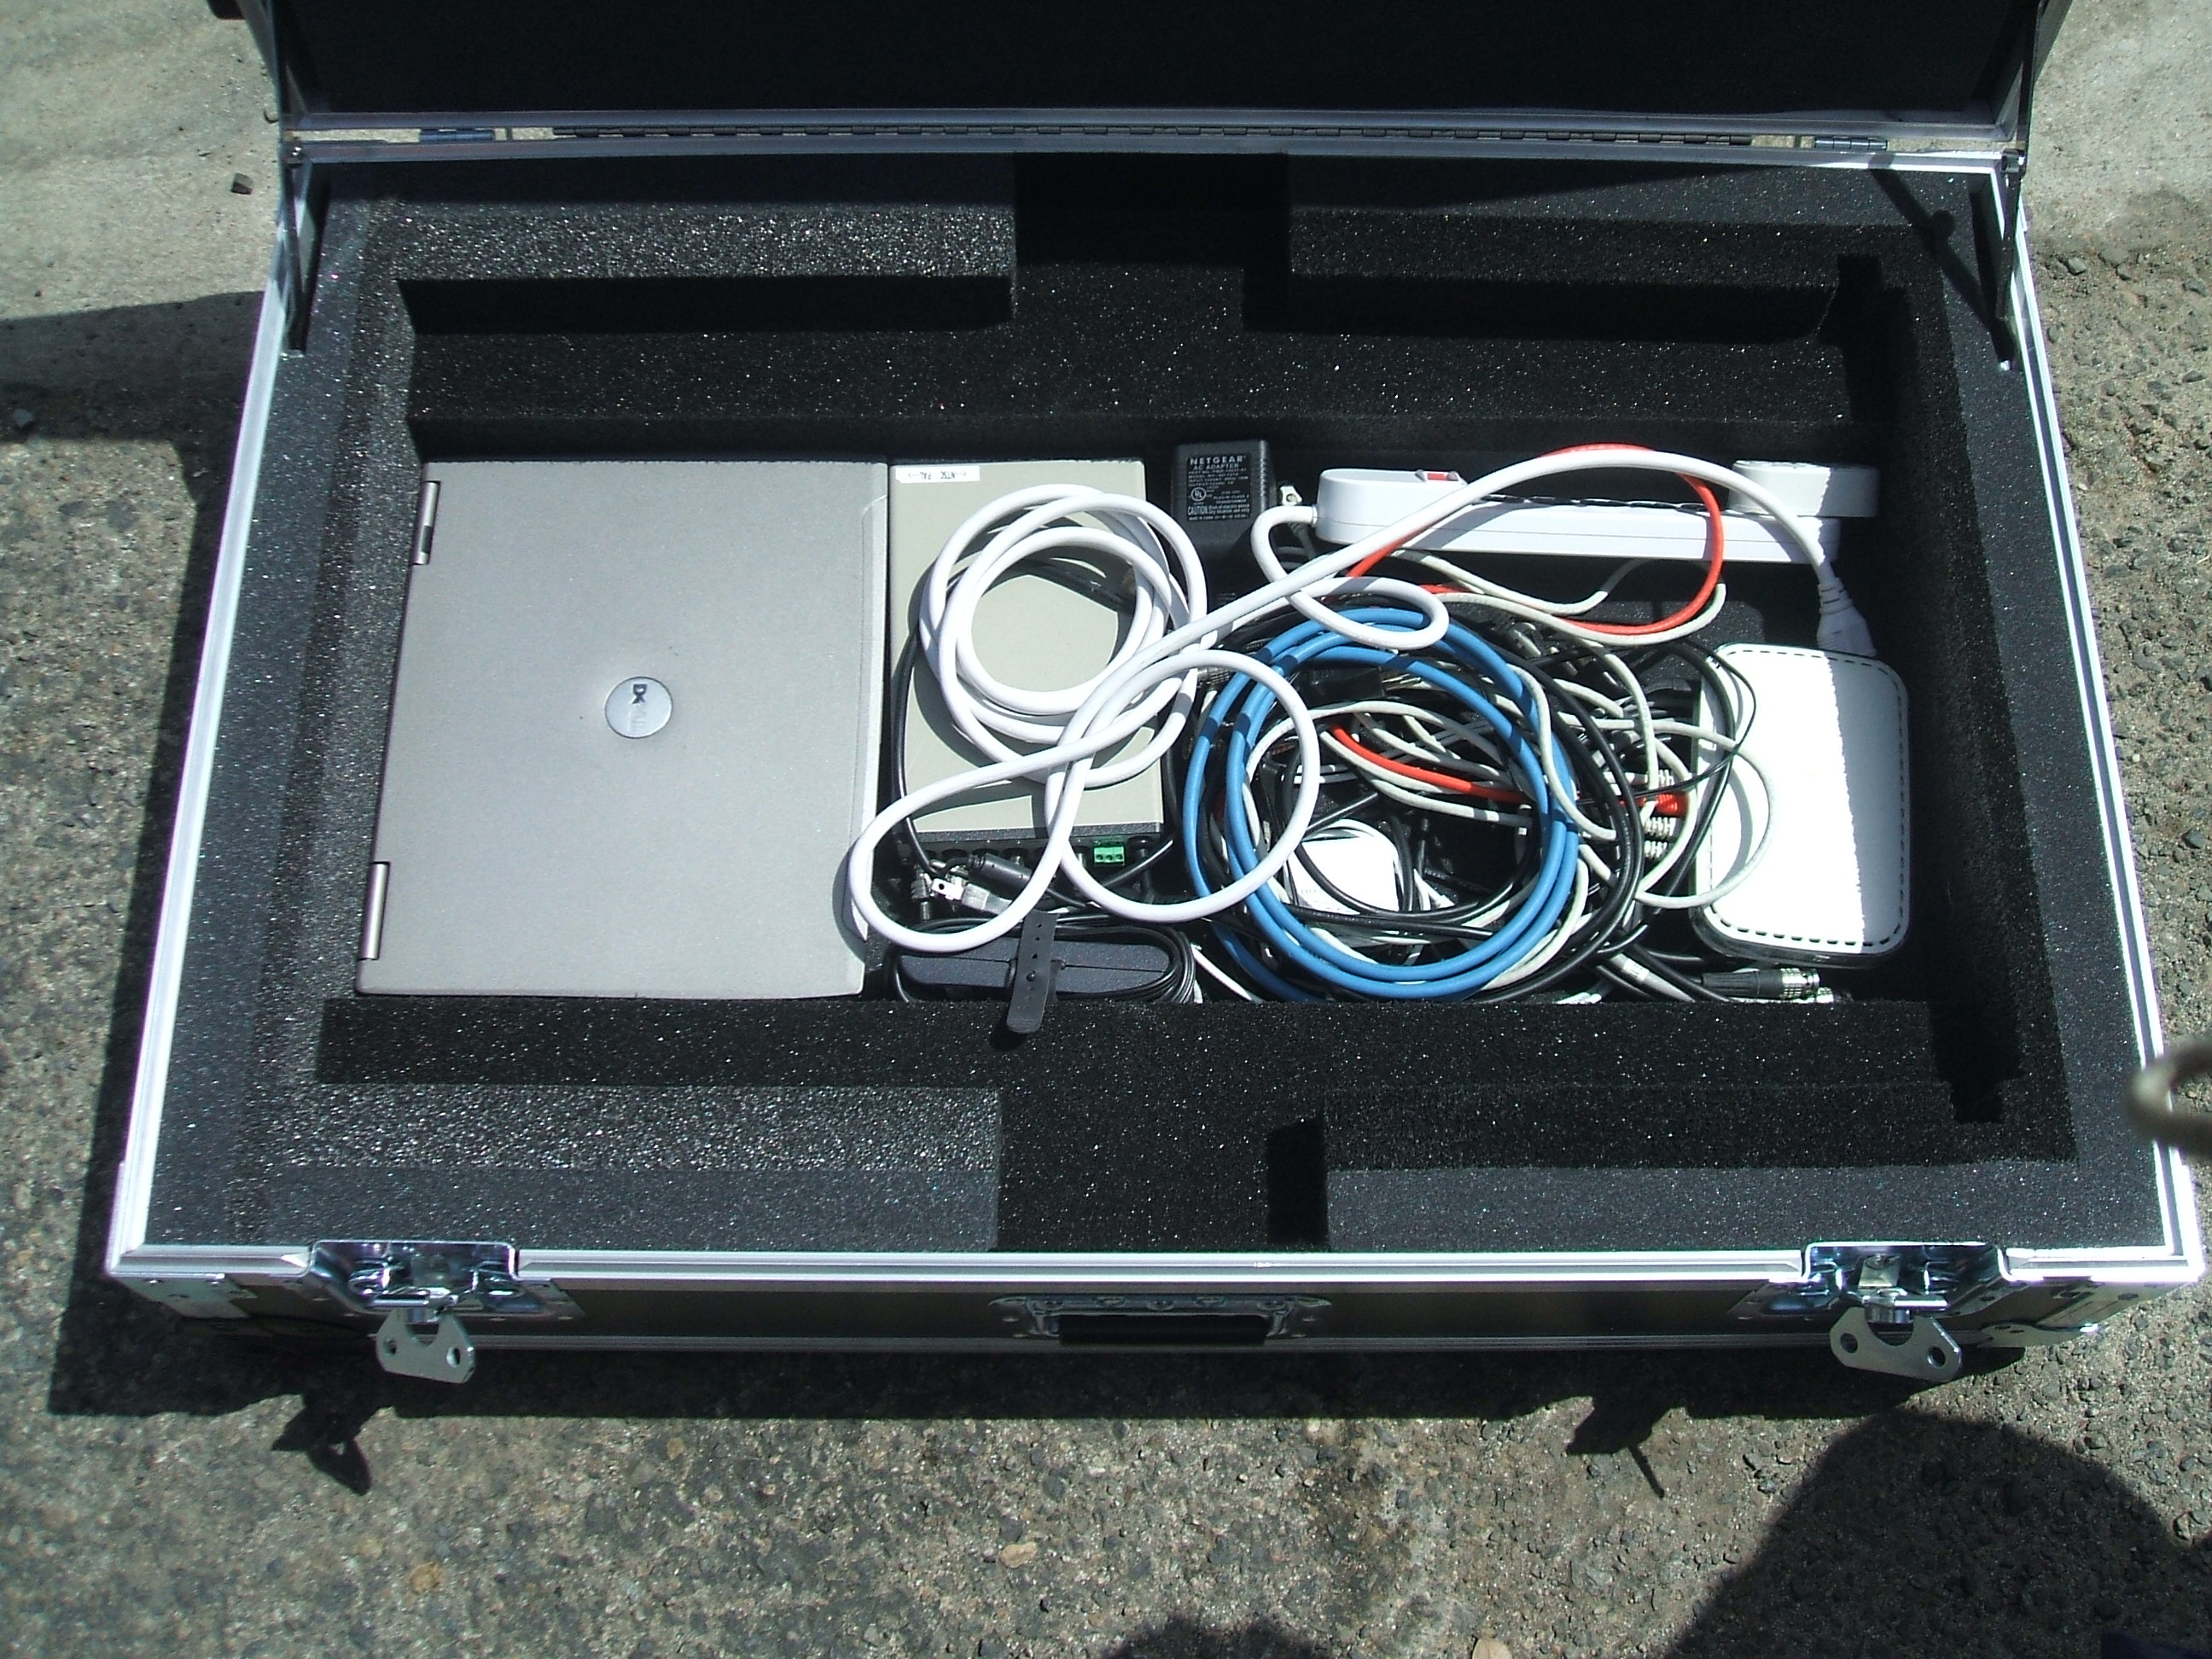 Print # 5921 - Custom Case for (1) Harmonic Spectrum Media Deck 7000 SSD Unit with Accessory  Compartment. By Nelson Case Corp